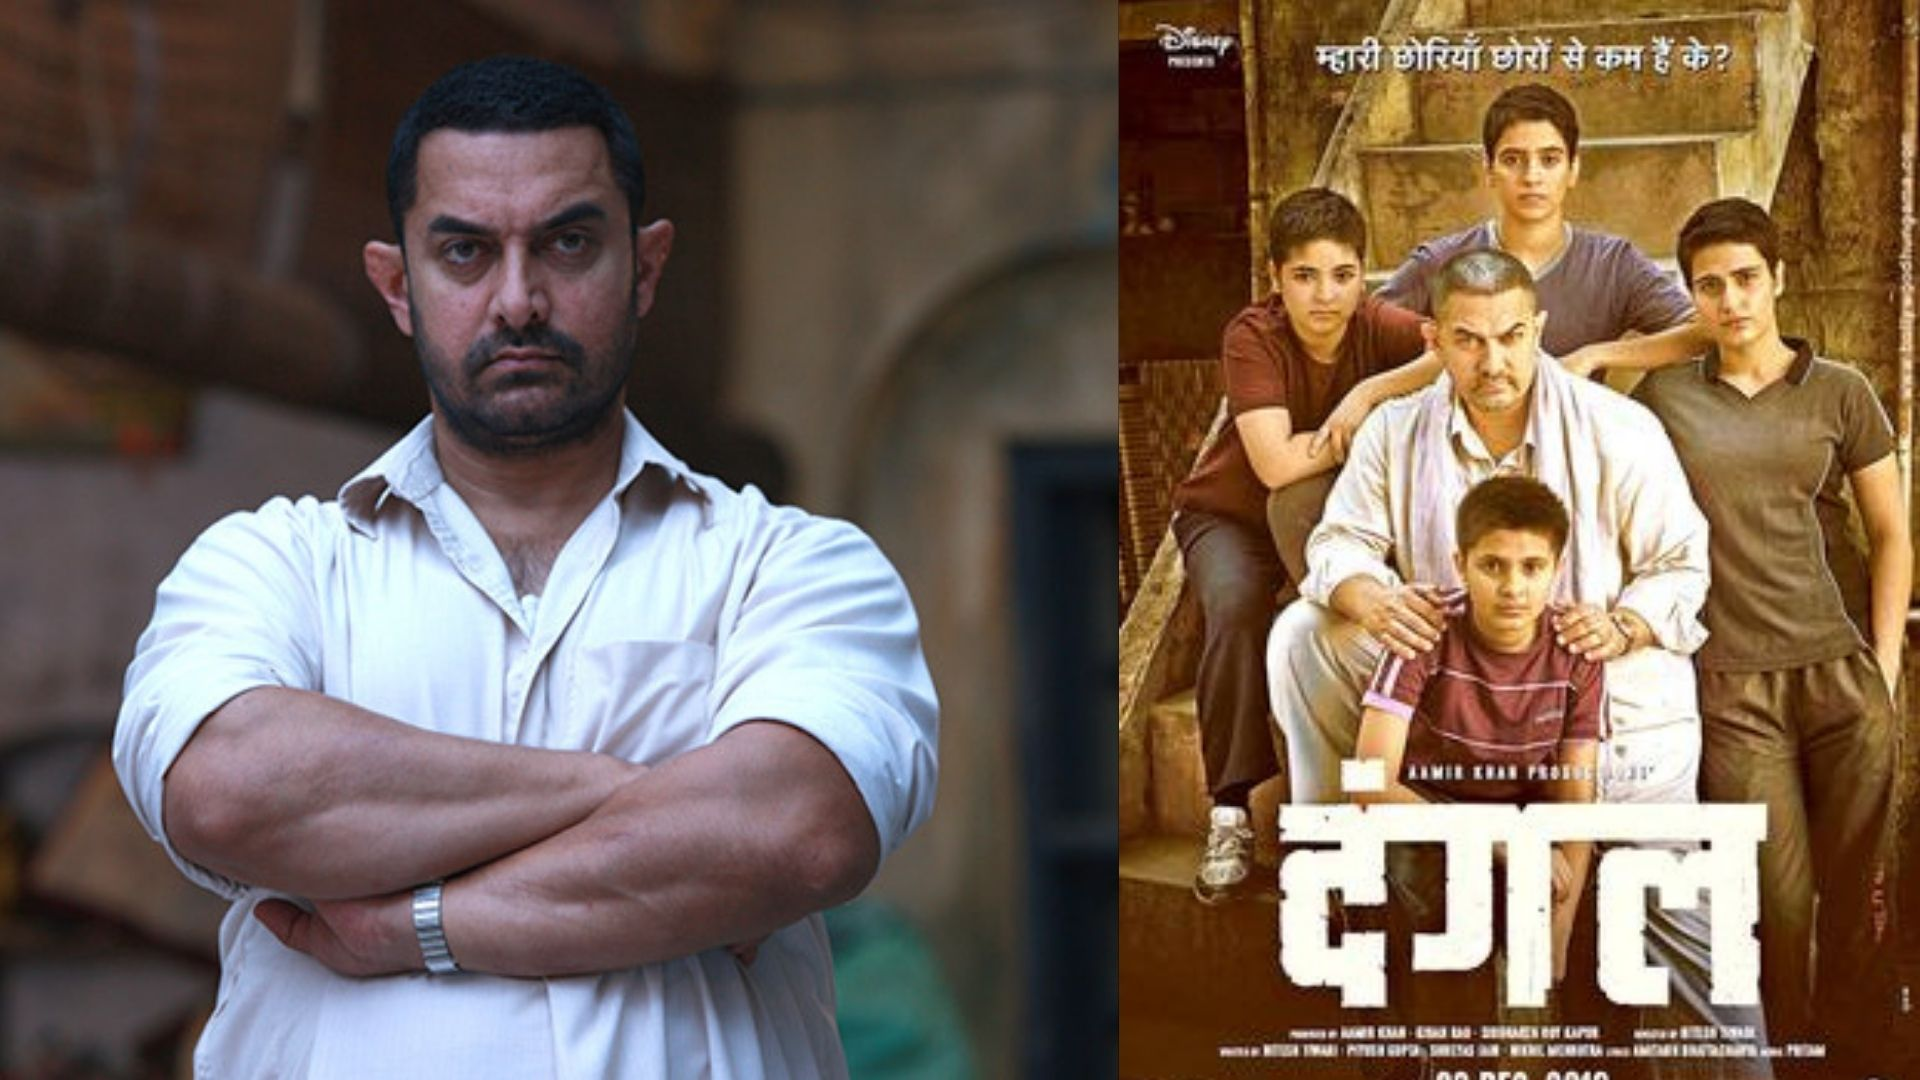 Did You Know? Aamir Khan Wasn't The First Pick For Nitesh Tiwari's Directorial For Character Of Mahavir Singh Phogat